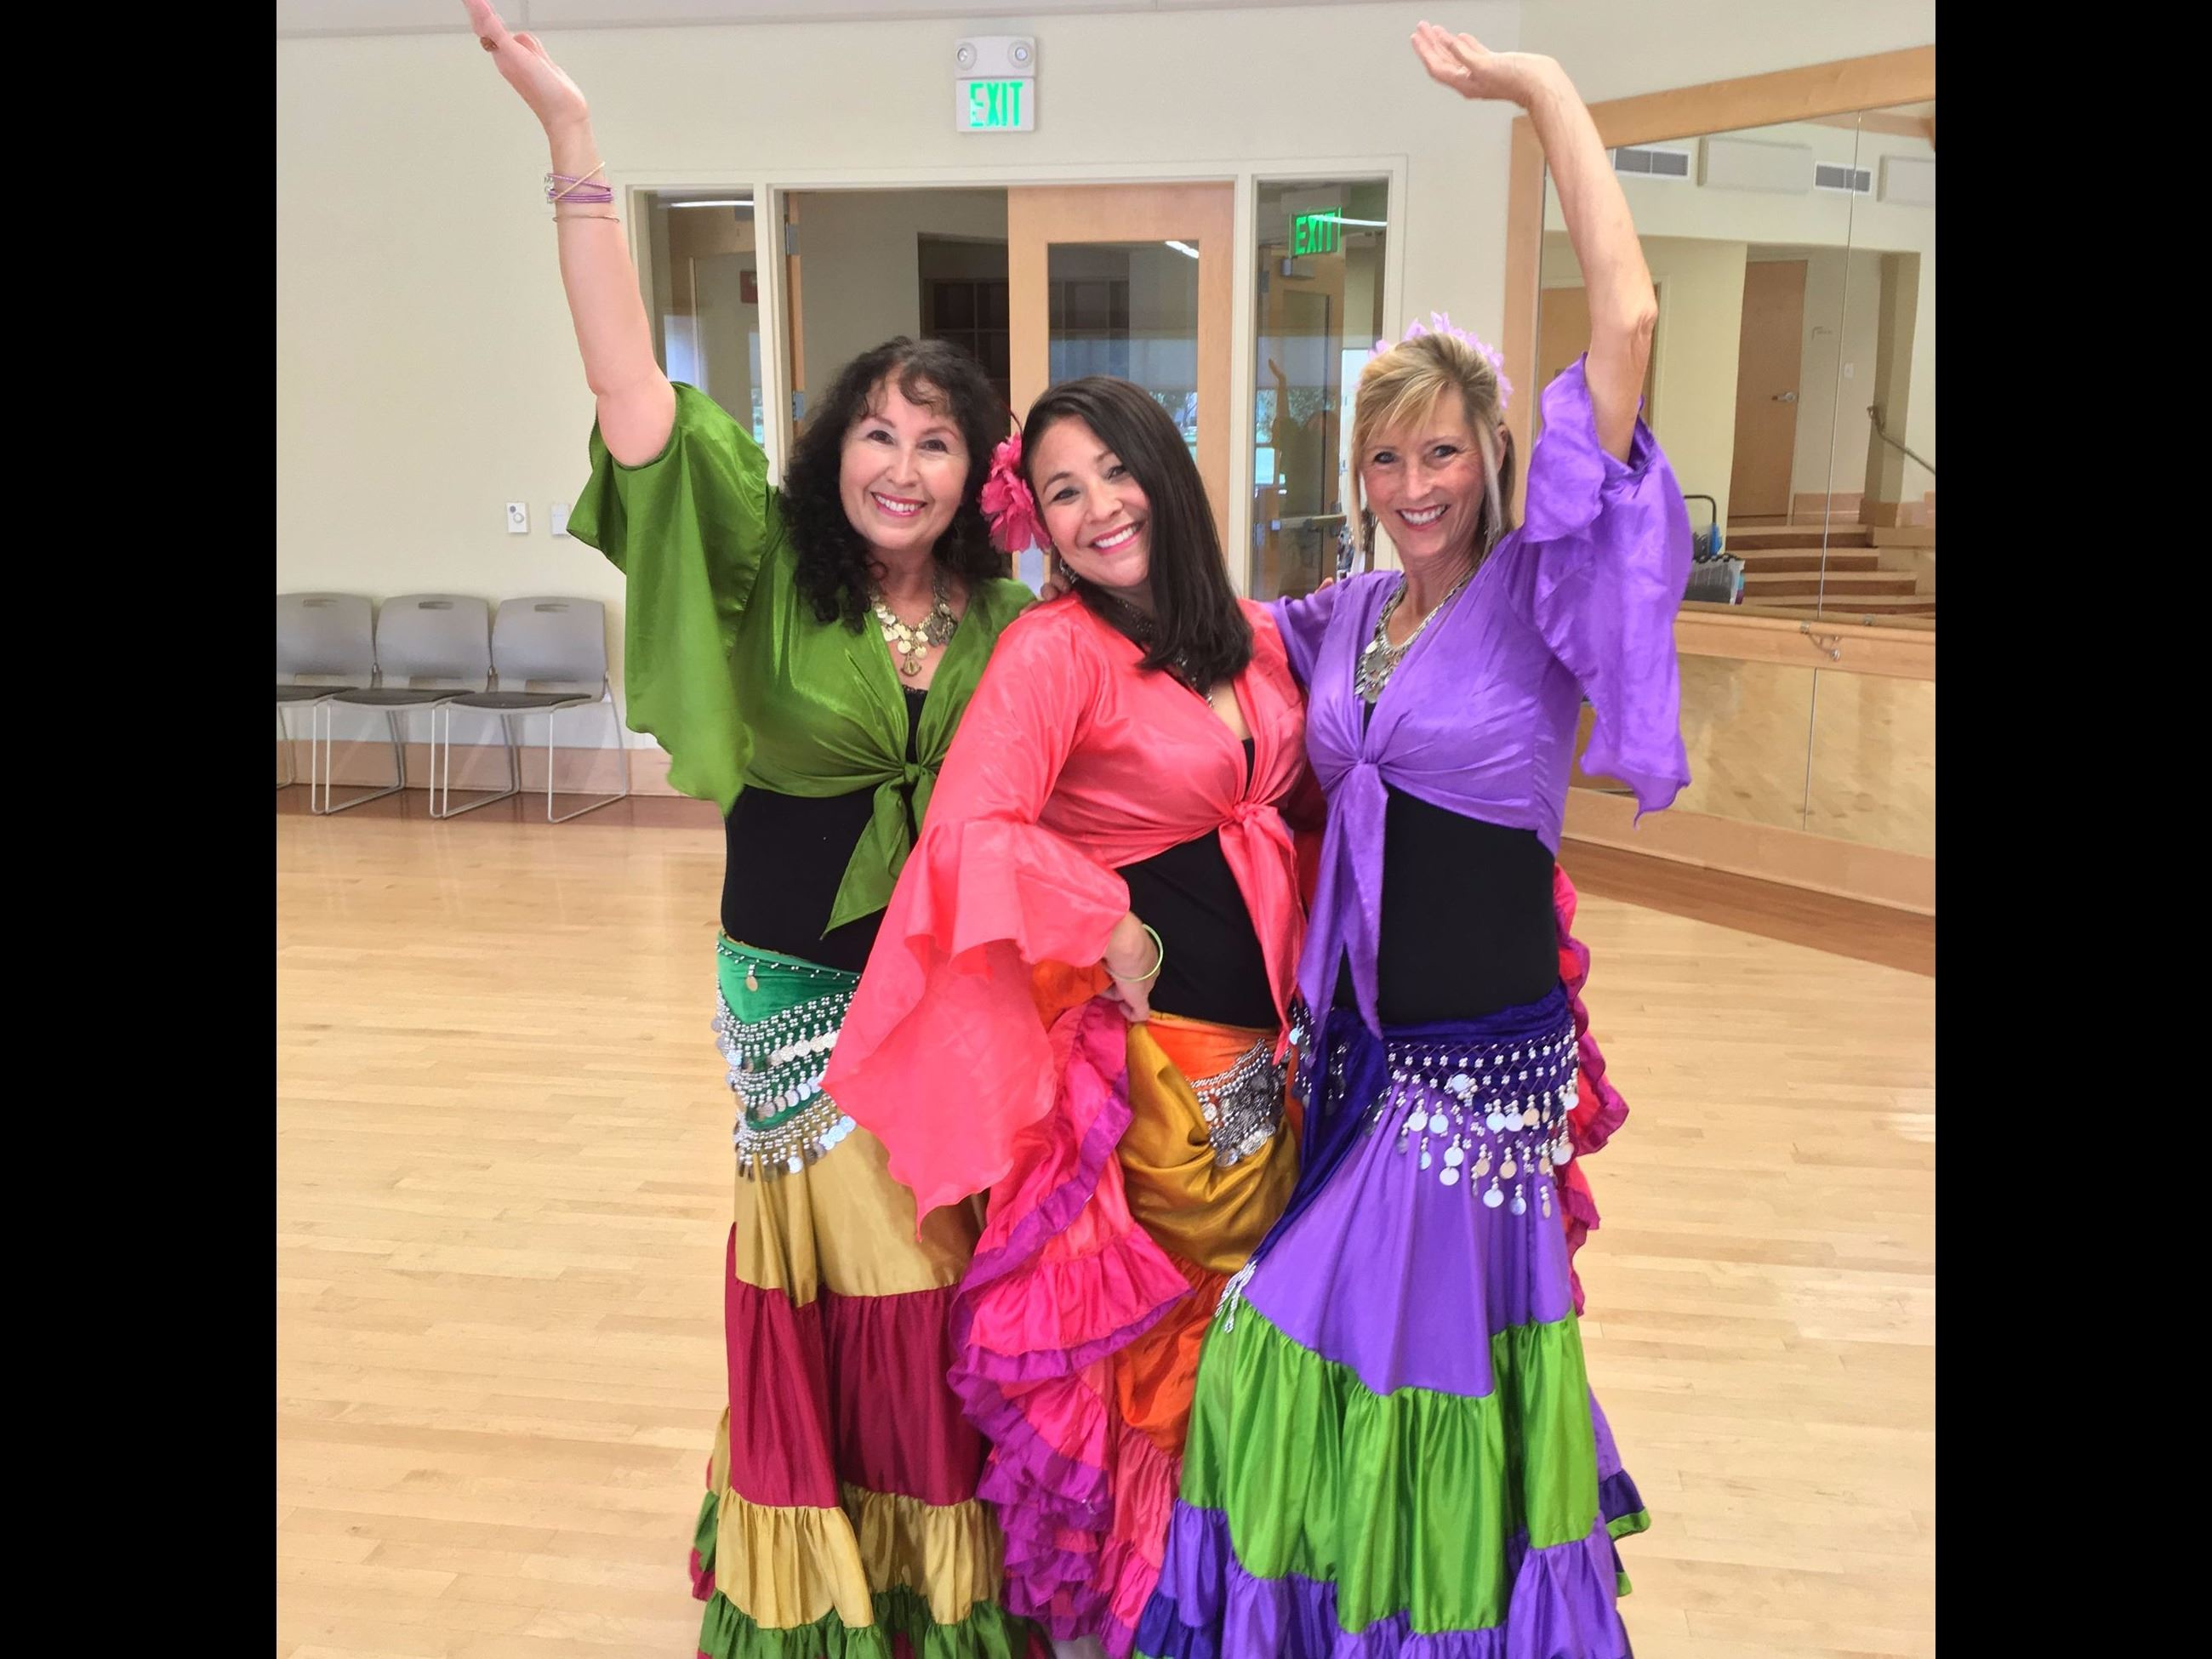 Three adult female belly dancers striking pose